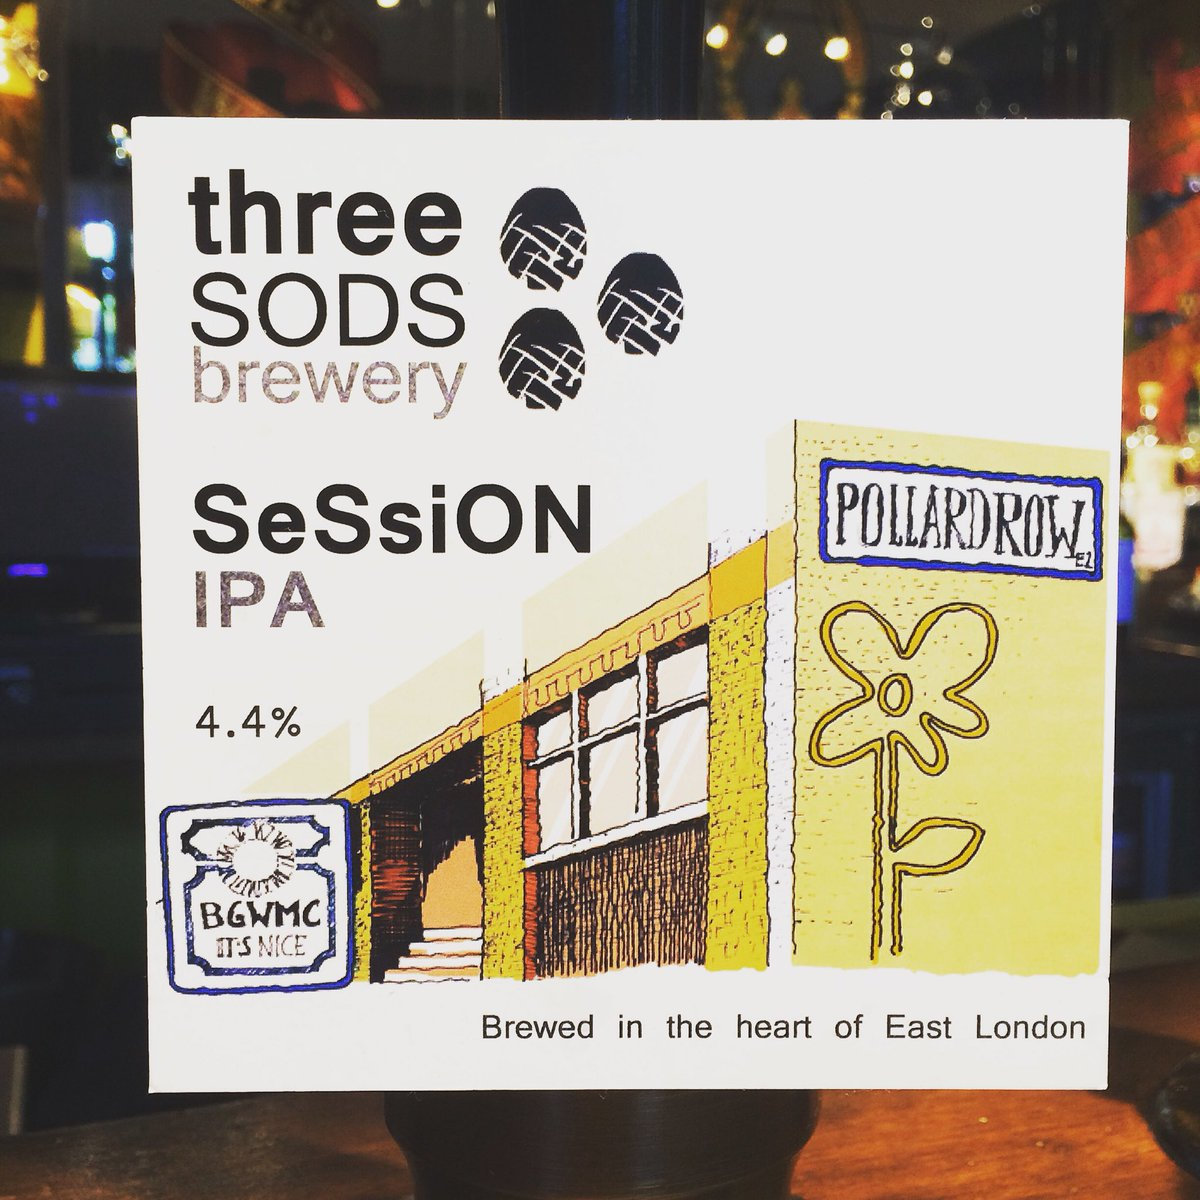 Hey y'all! We've got a new cask from @threesodsbrewery. She's light, she's refreshing and she's downright hoppy! Half price on Mondays! #craftbeernotcrapbeer #plaqueminelock